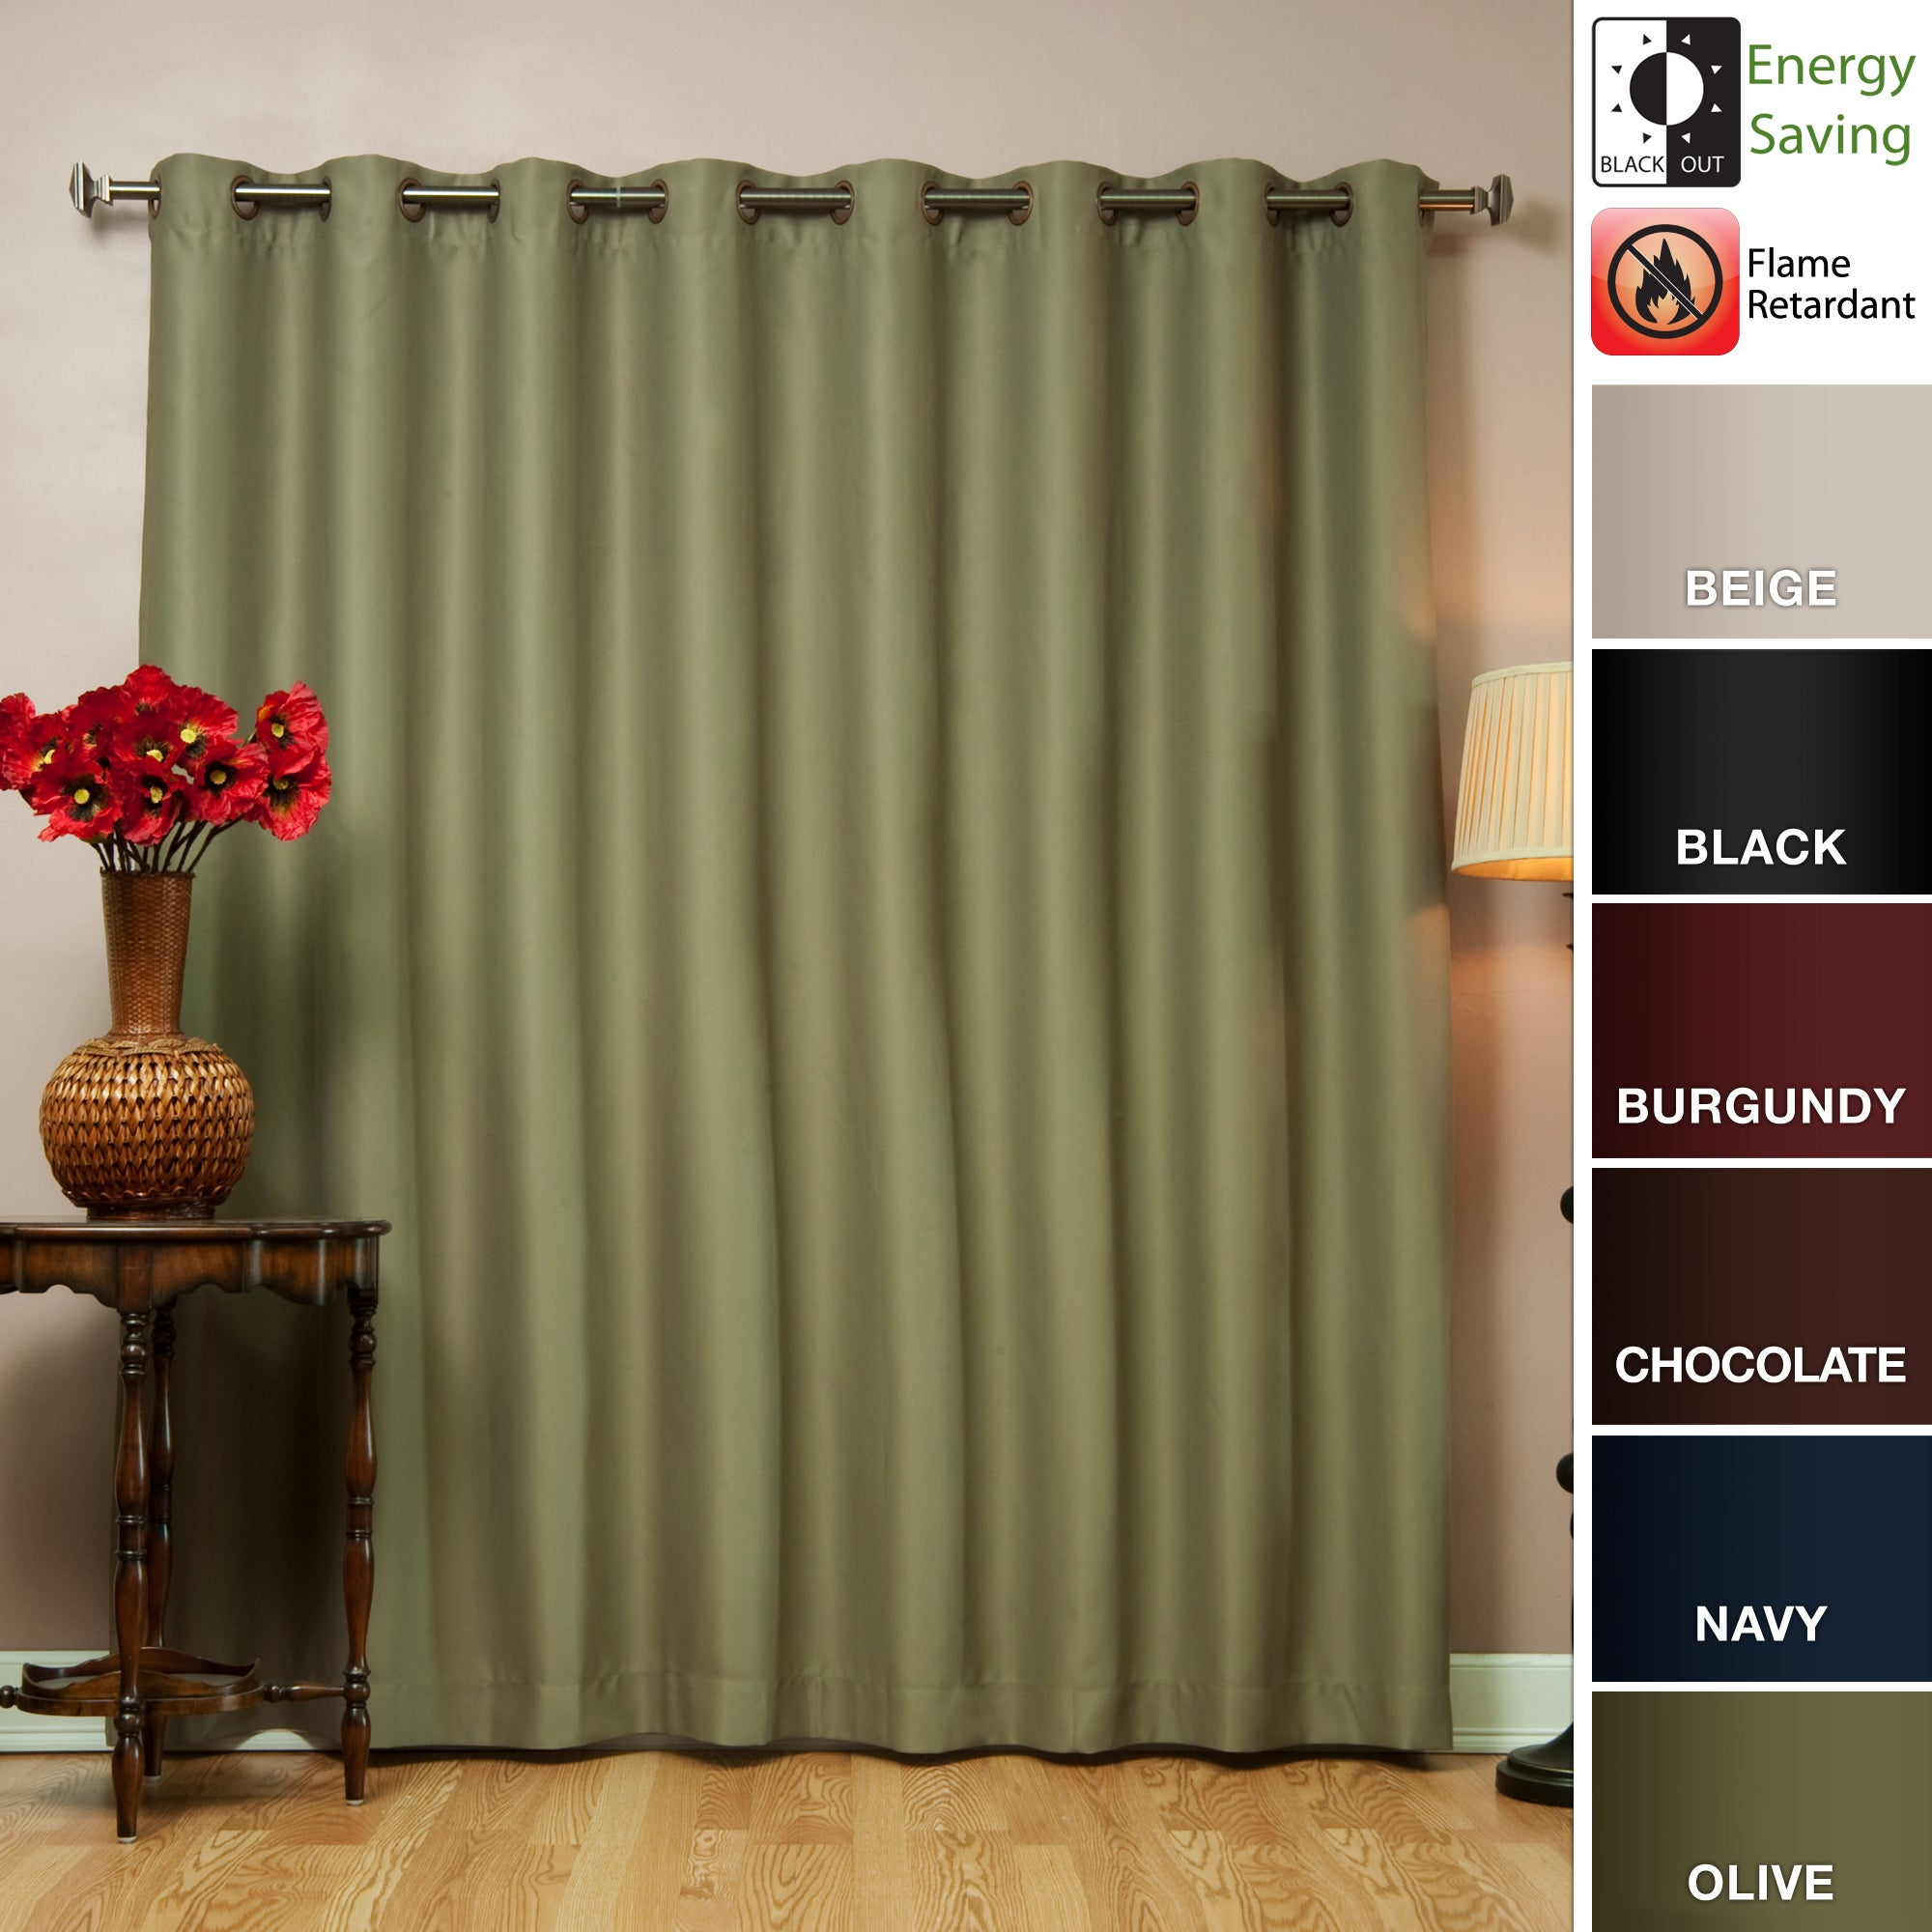 Wide-Width Fire-Retardant 95-Inch Polyester Blackout Curtain Panel at Sears.com